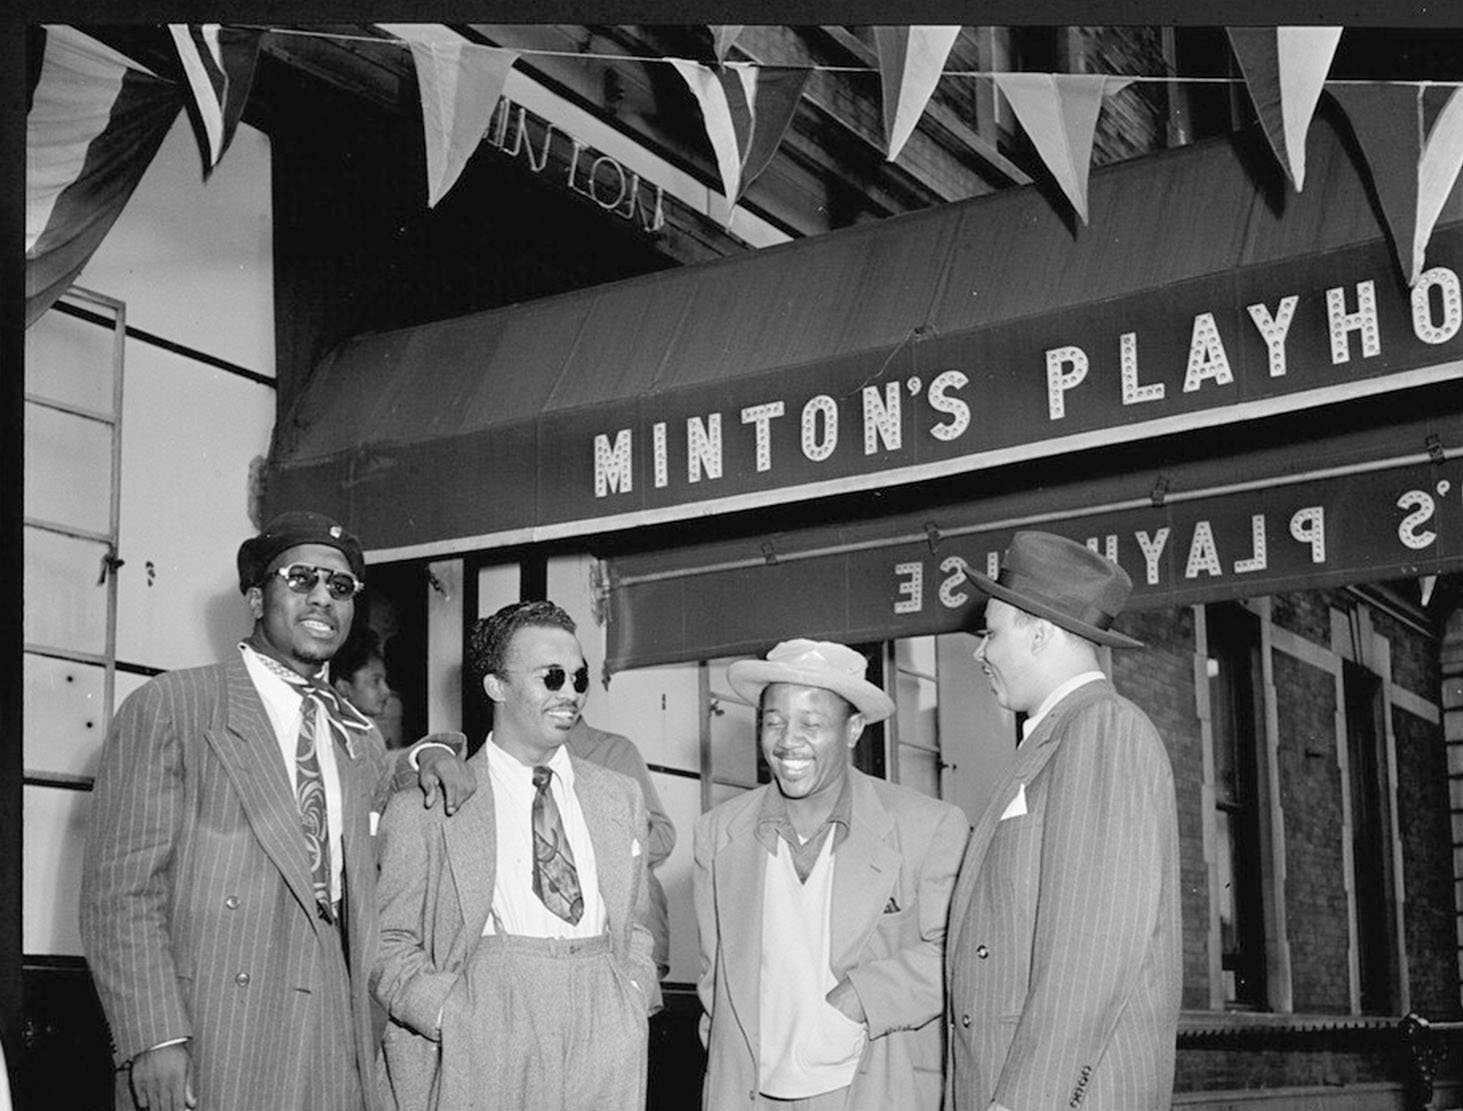 Pictured (left to right): Thelonious Monk, Howard McGhee, Roy Eldridge, and Teddy Hill at the door of Minton's Playhouse in 1947 (Photo by William P. Gottlieb).